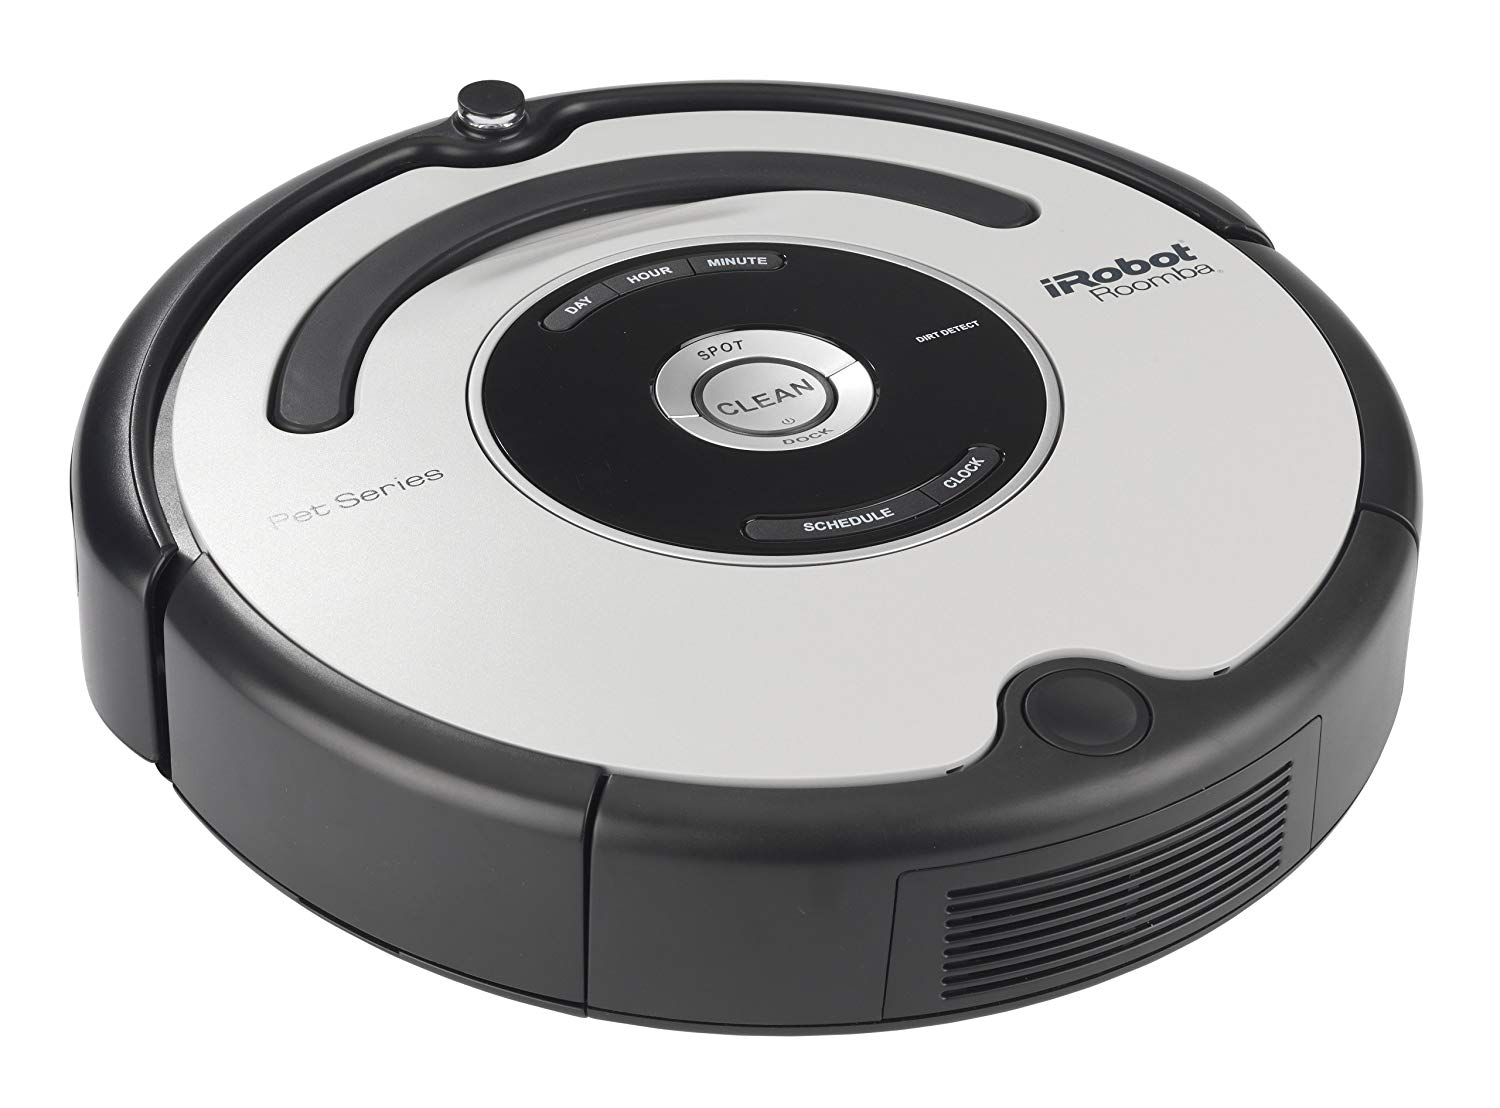 batterie roomba pet series